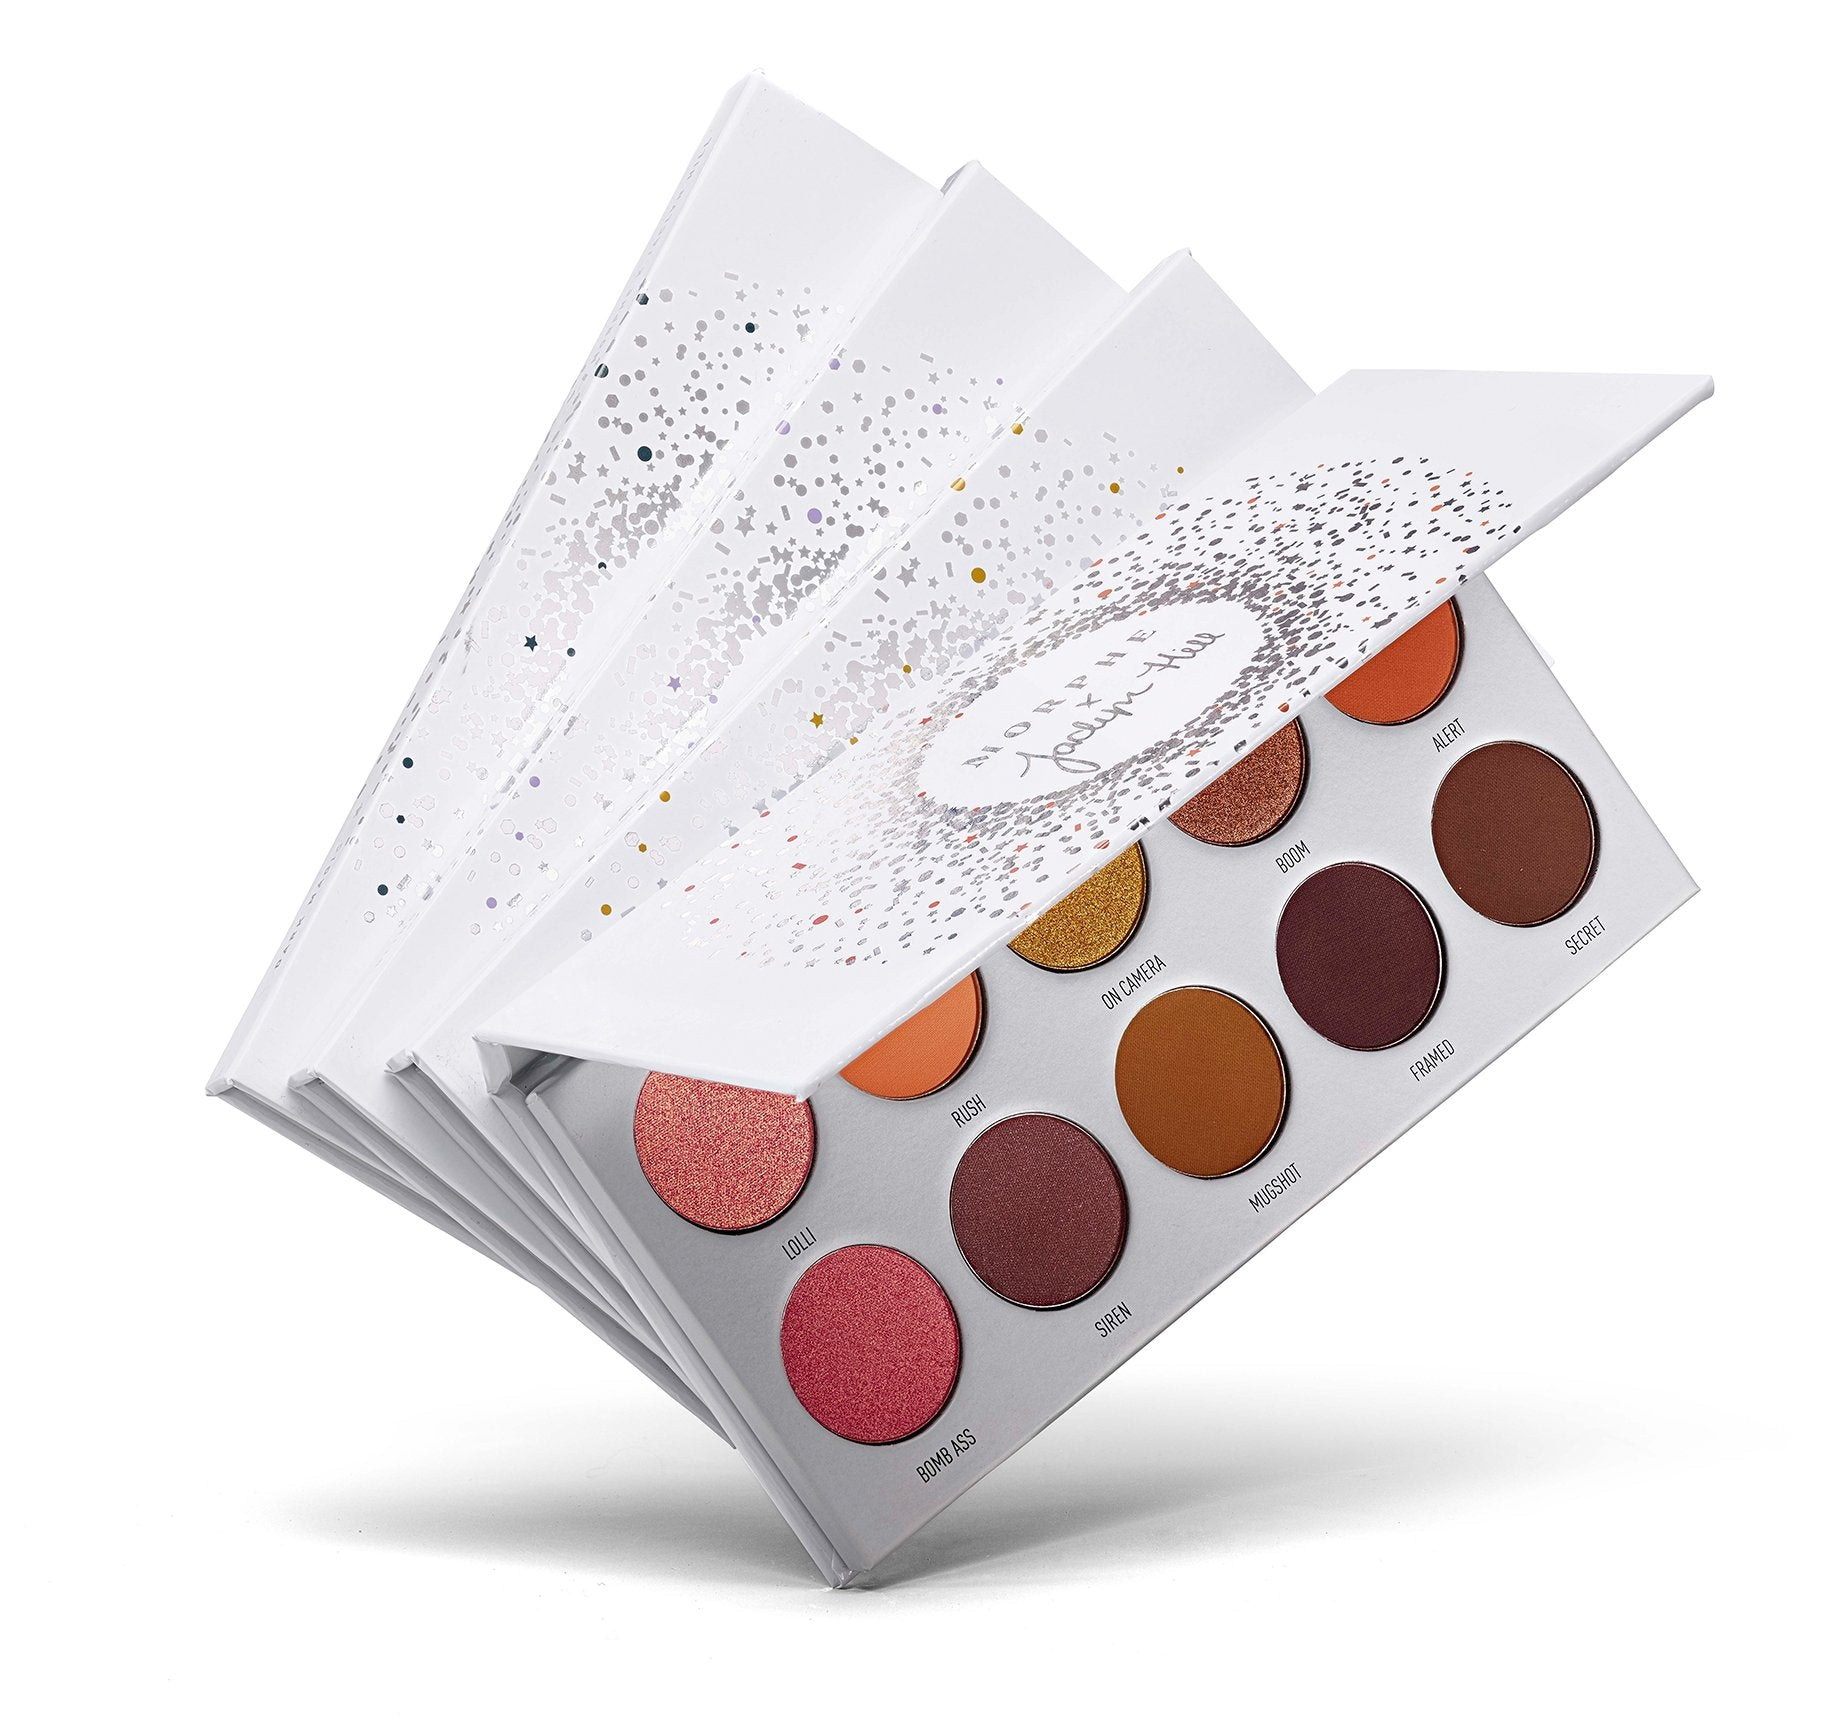 Morphe Brushes Eyeshadow Palette - Morphe ...